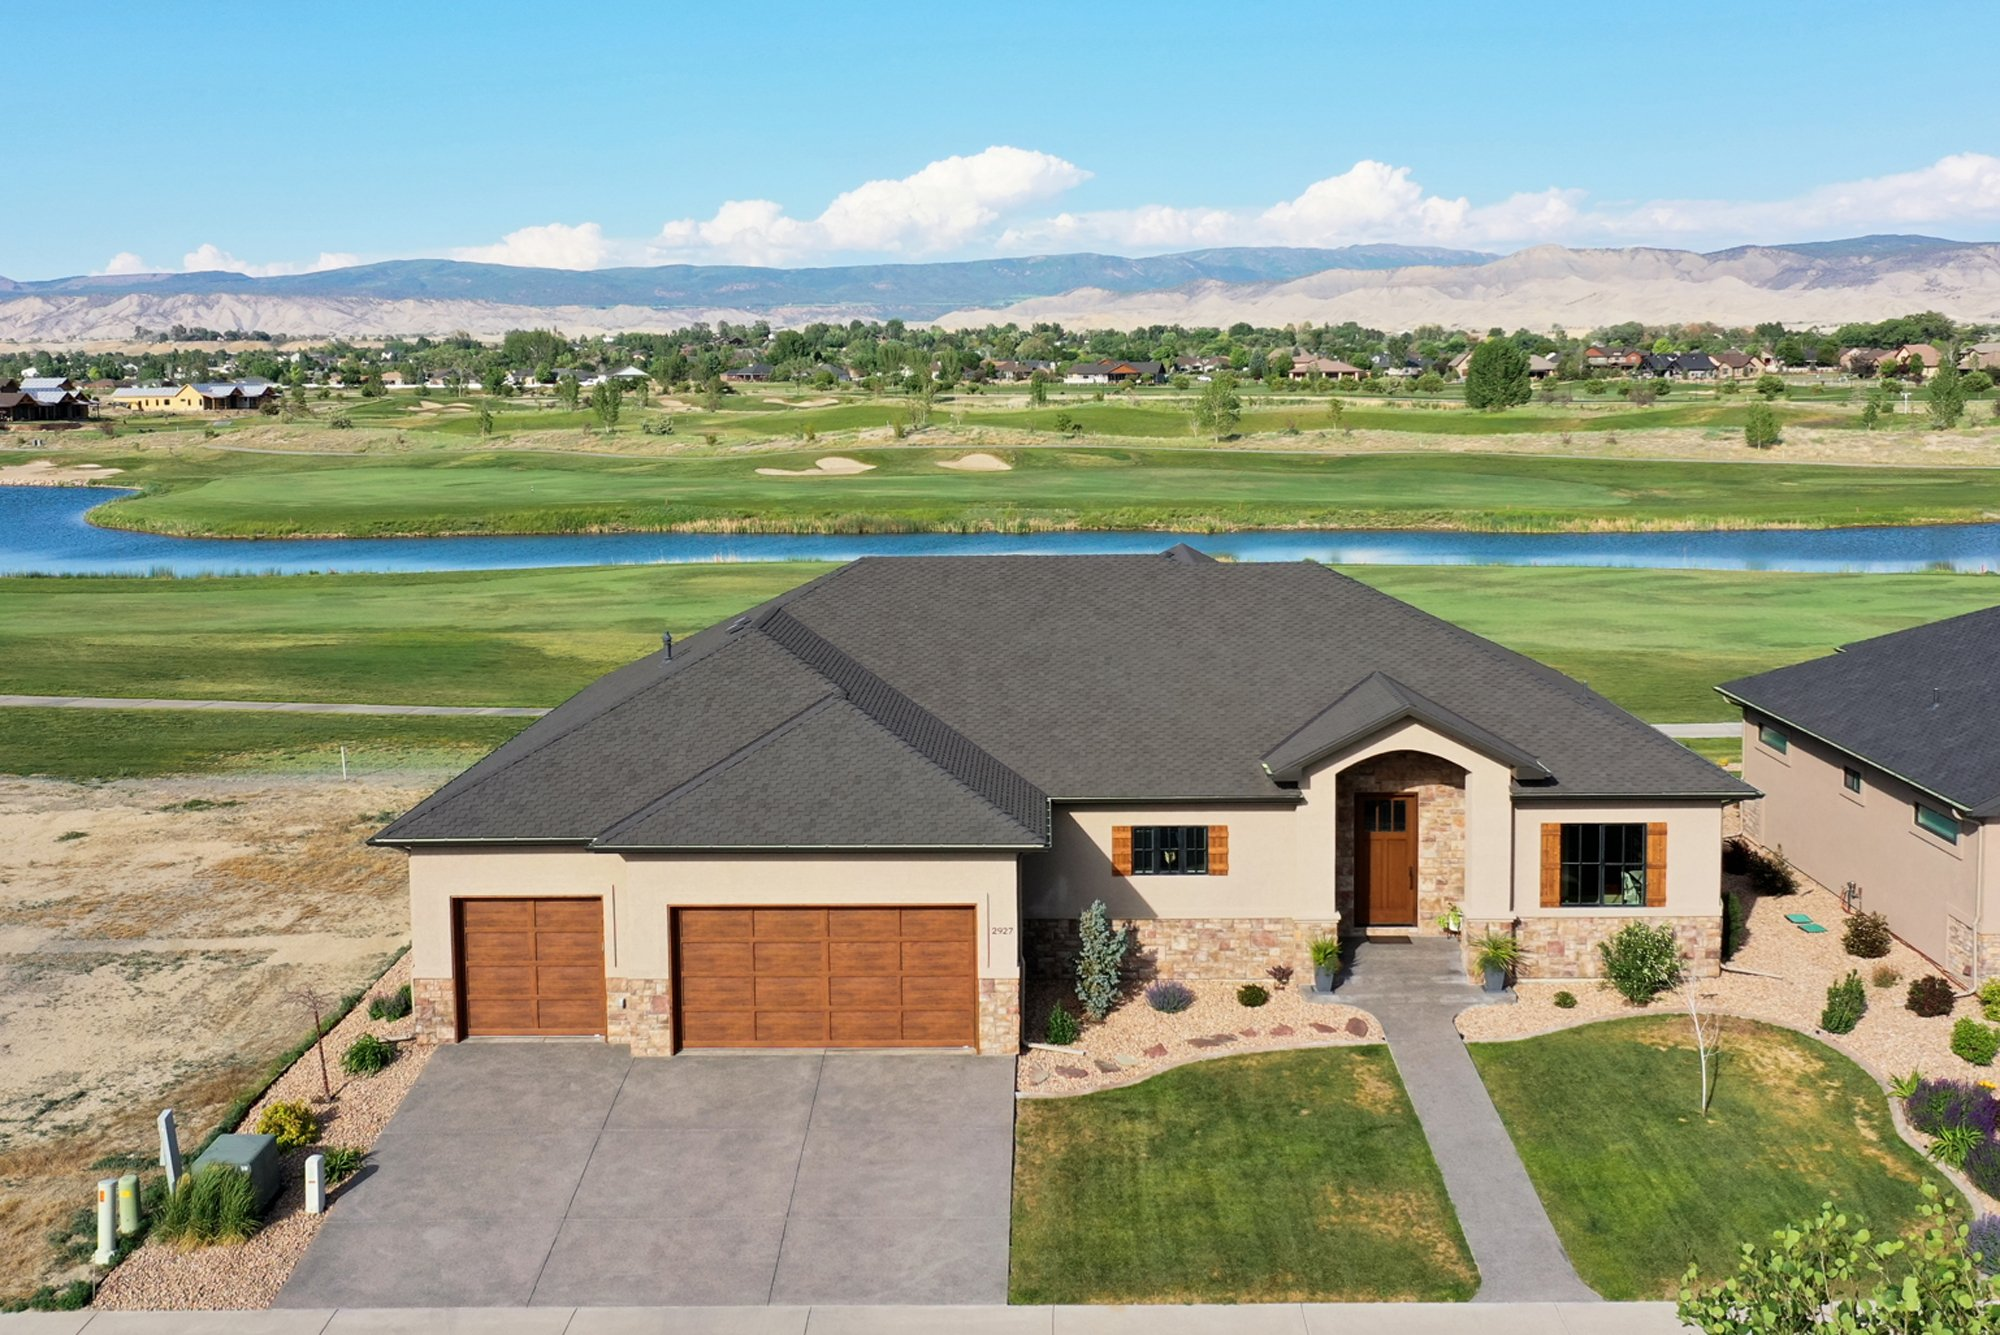 Aerial View Front of Home - 2927 Sleeping Bear Rd Montrose, CO 81401 - Atha Team Real Estate